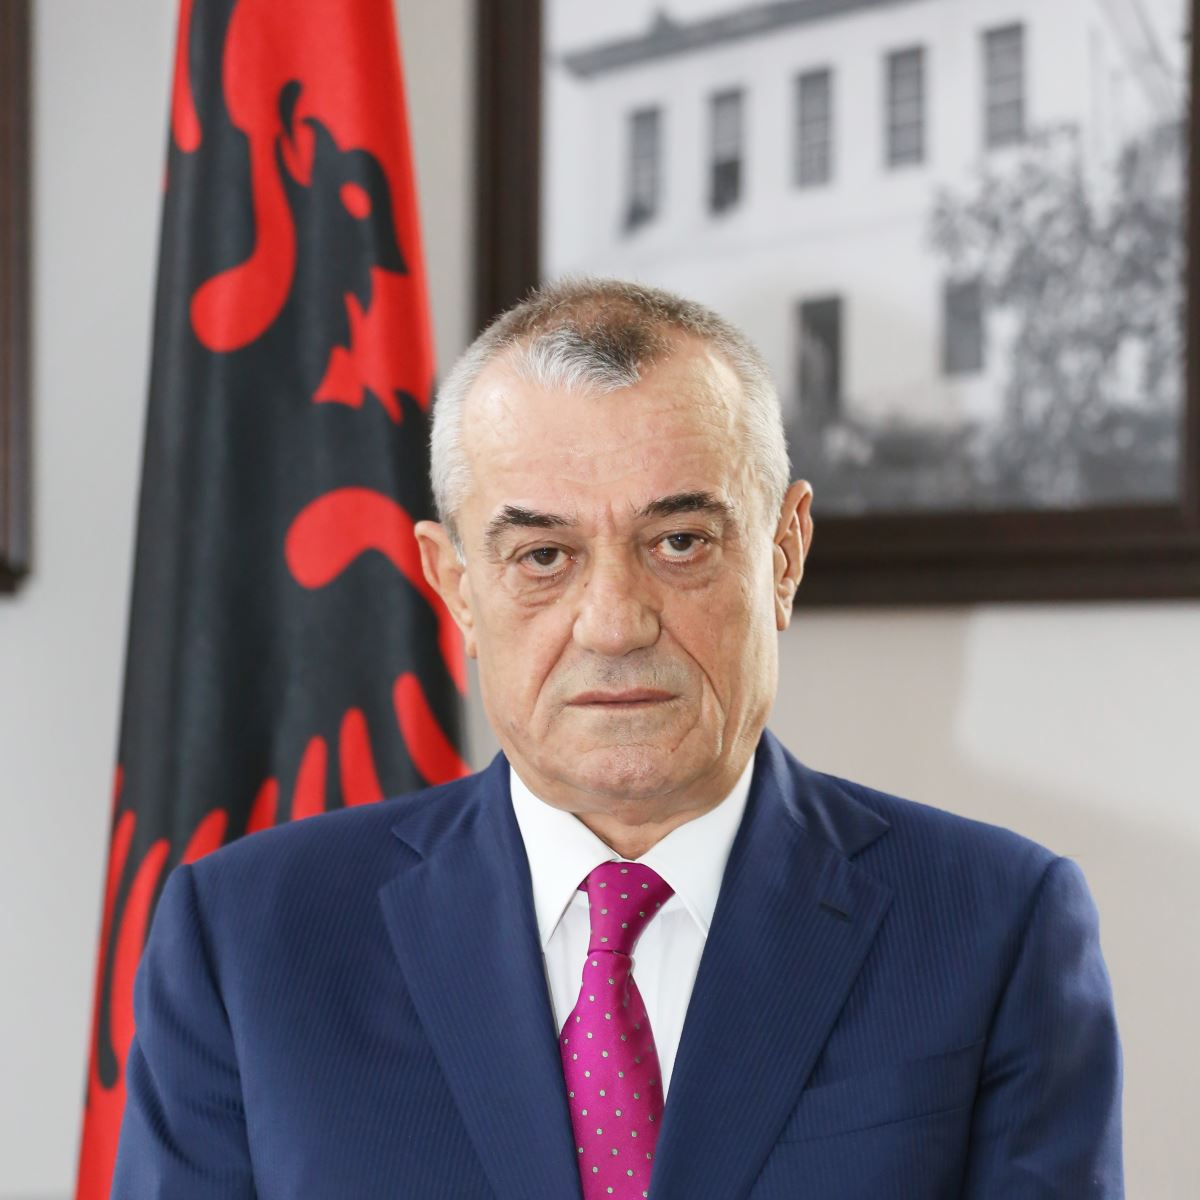 H.E. Mr. Gramoz RUÇI